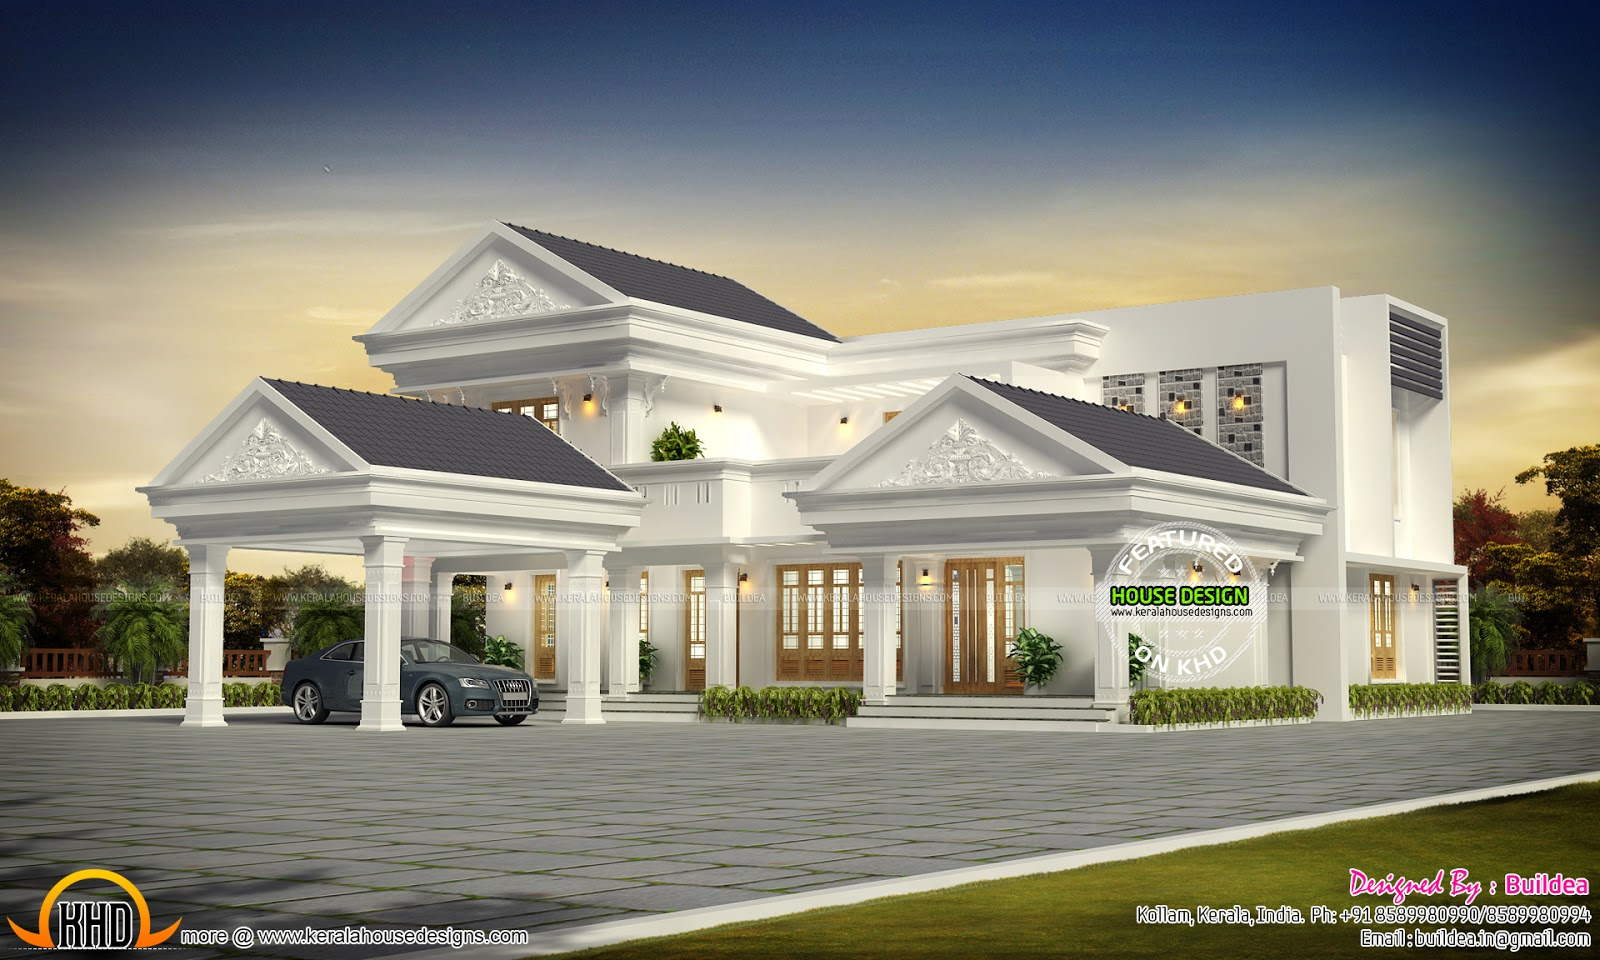 modern kerala home design sq ft kerala home design floor sq ft house provision stair future expansion home